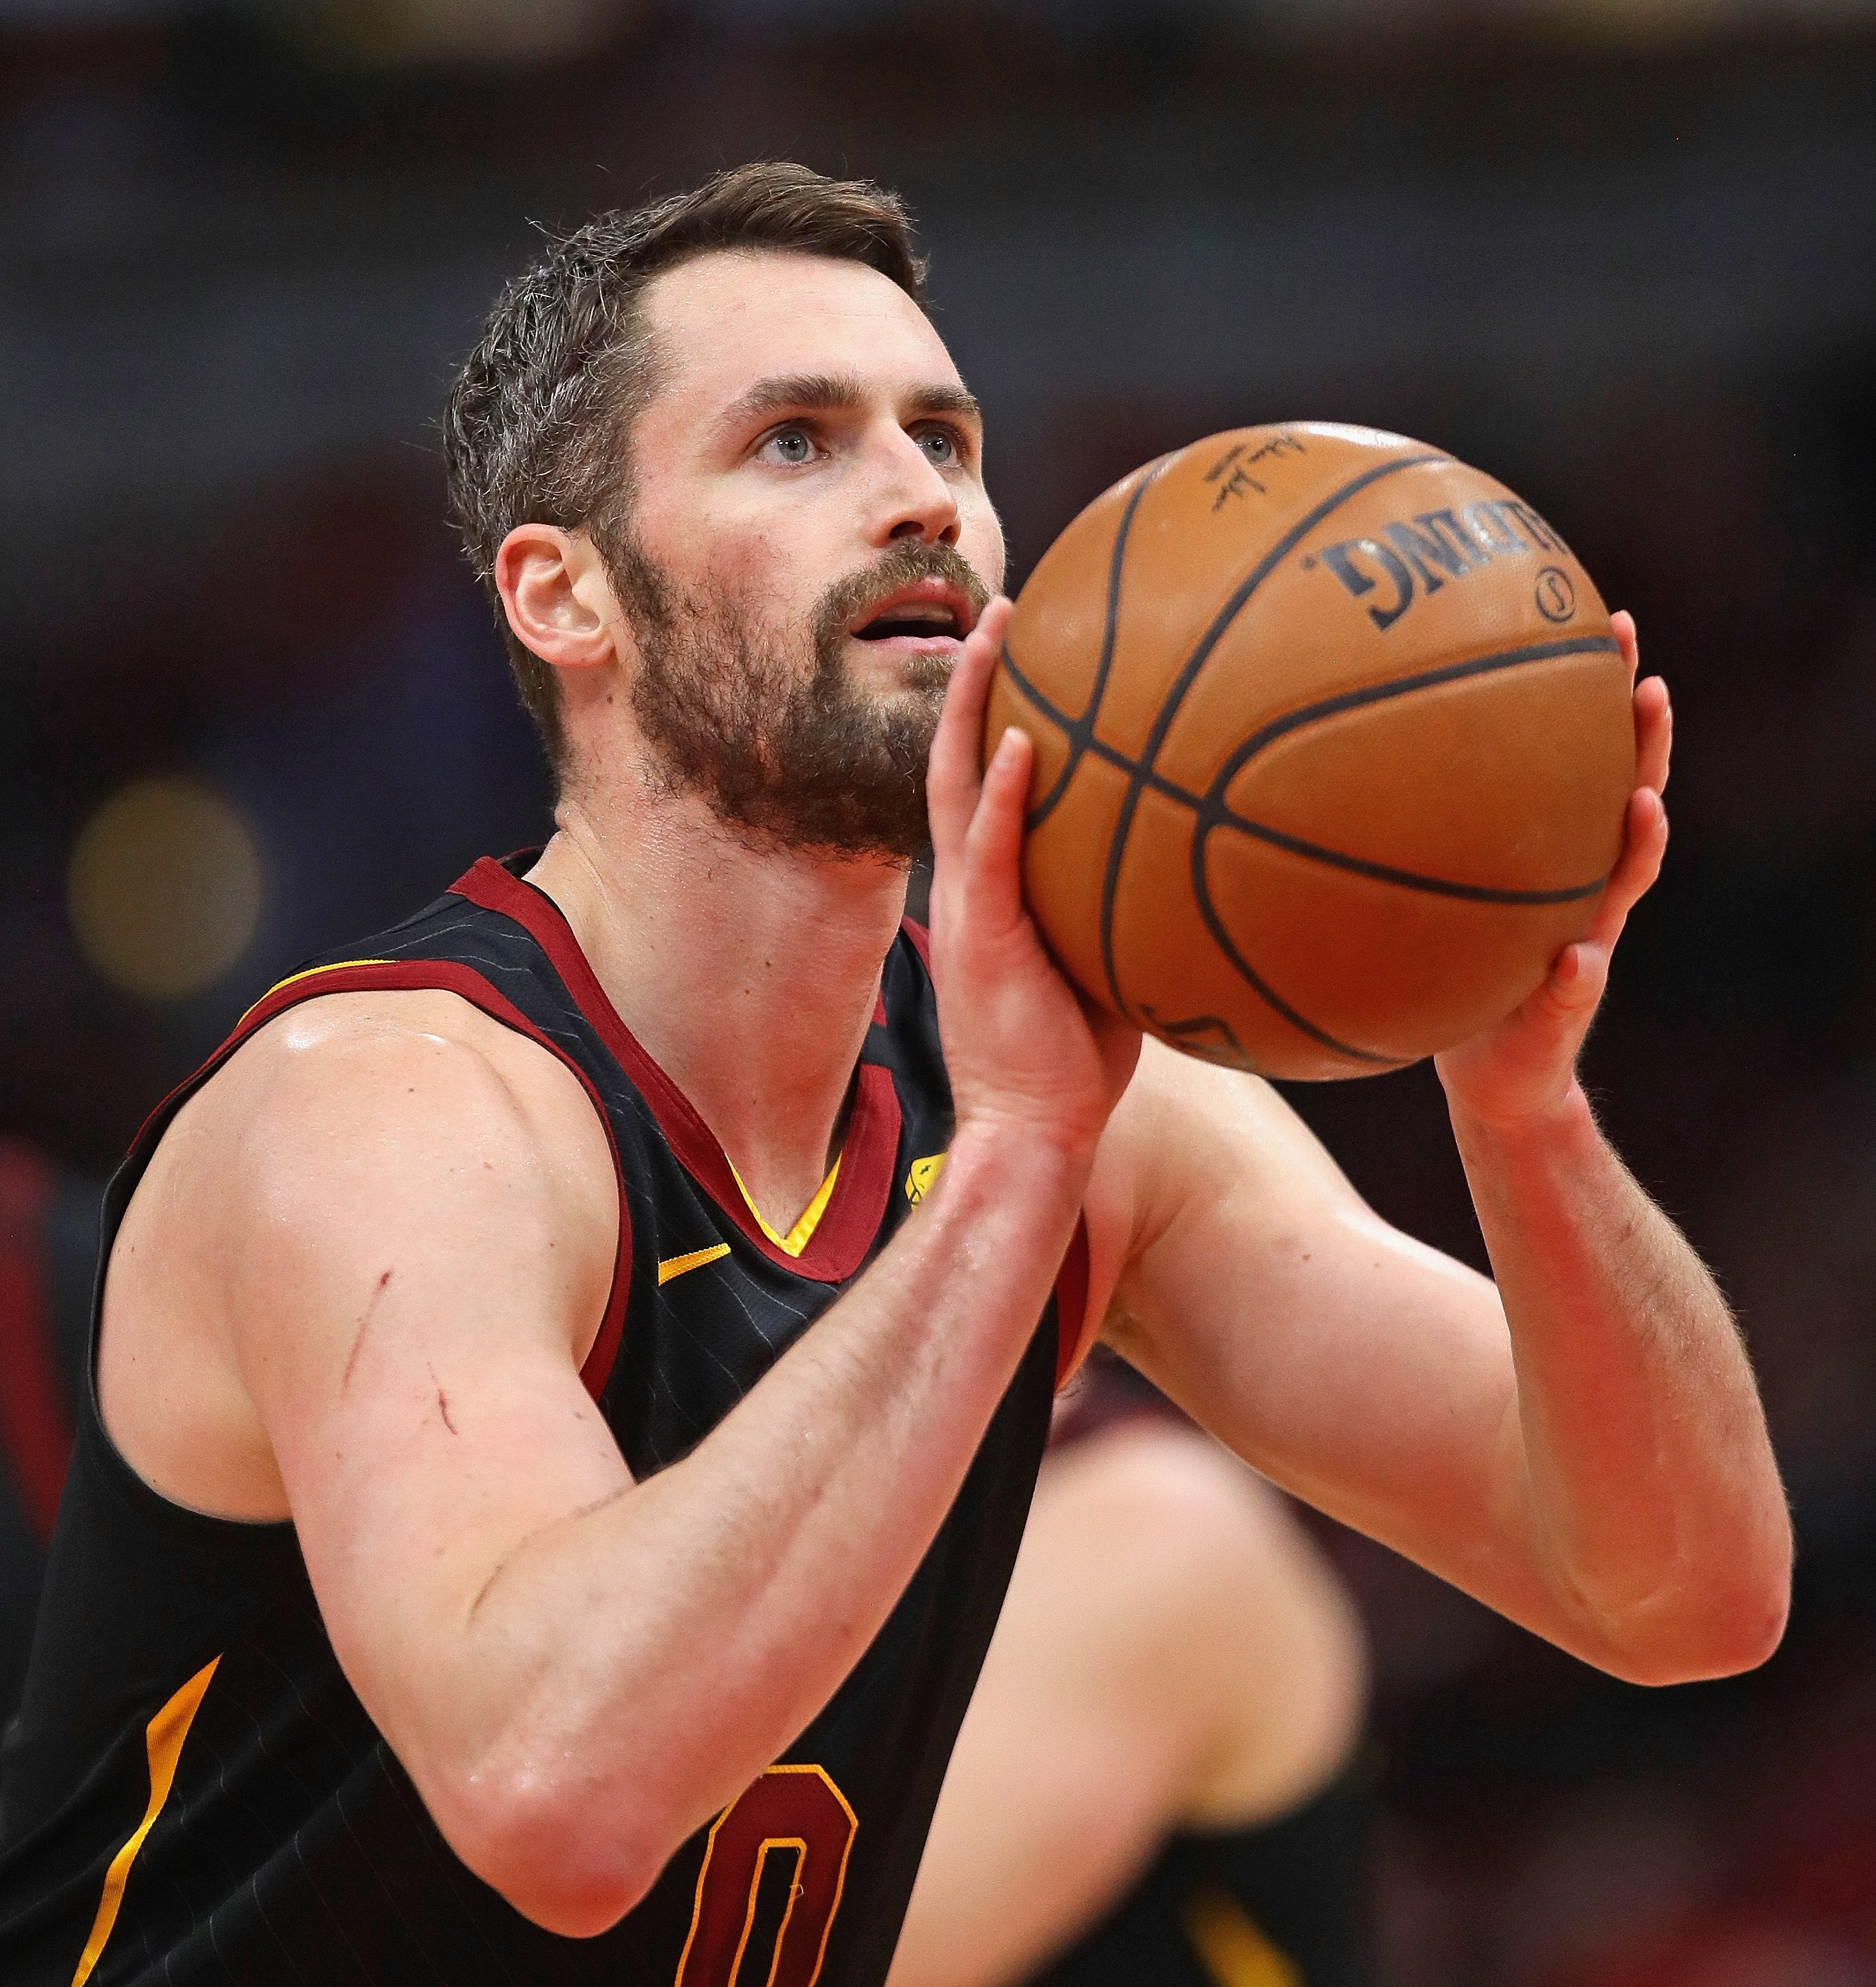 Kevin Love facing off against the Chicago Bulls in Illinois, March, 2020. | Photo: Getty Images.